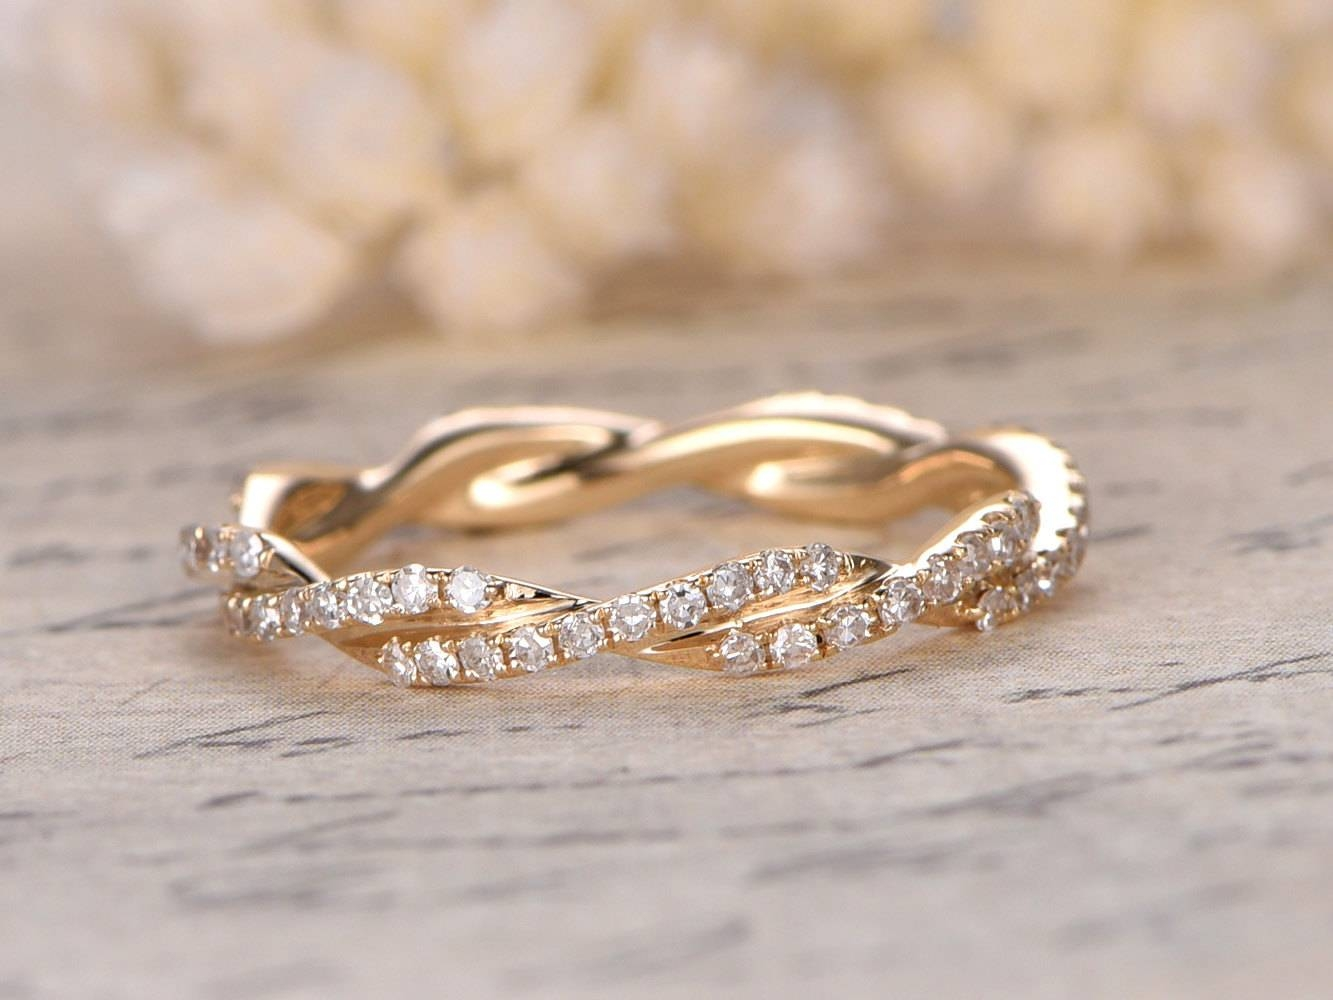 Diamond Wedding Bandfull Eternity Anniversary Ring 14K Regarding Most Recent Infinity Anniversary Rings (View 5 of 25)